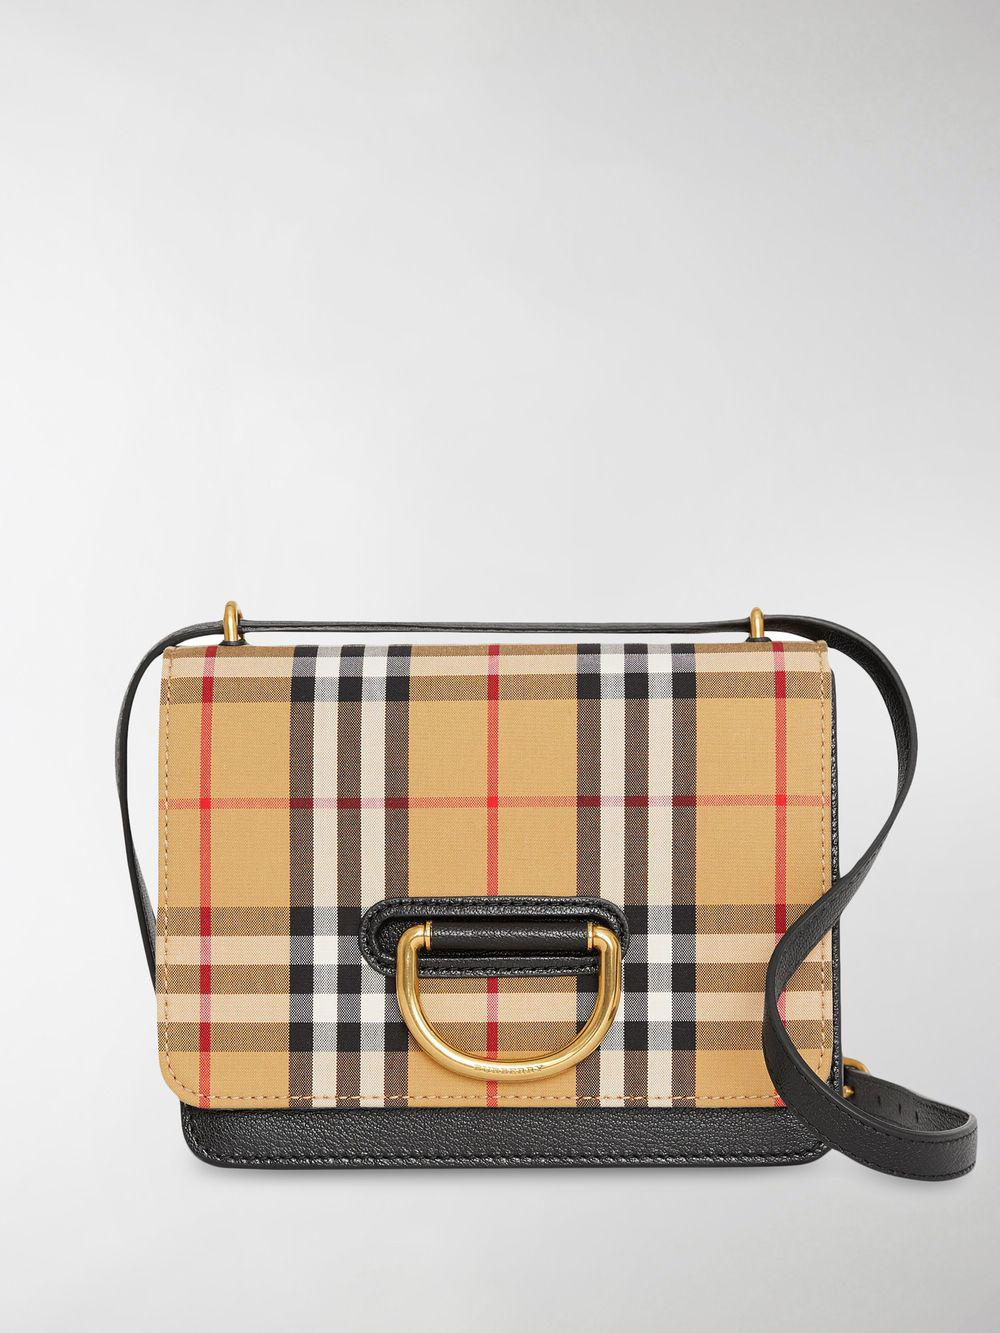 8f8a022d7f1c Lyst - Burberry Small Vintage Check D-ring Bag in Yellow